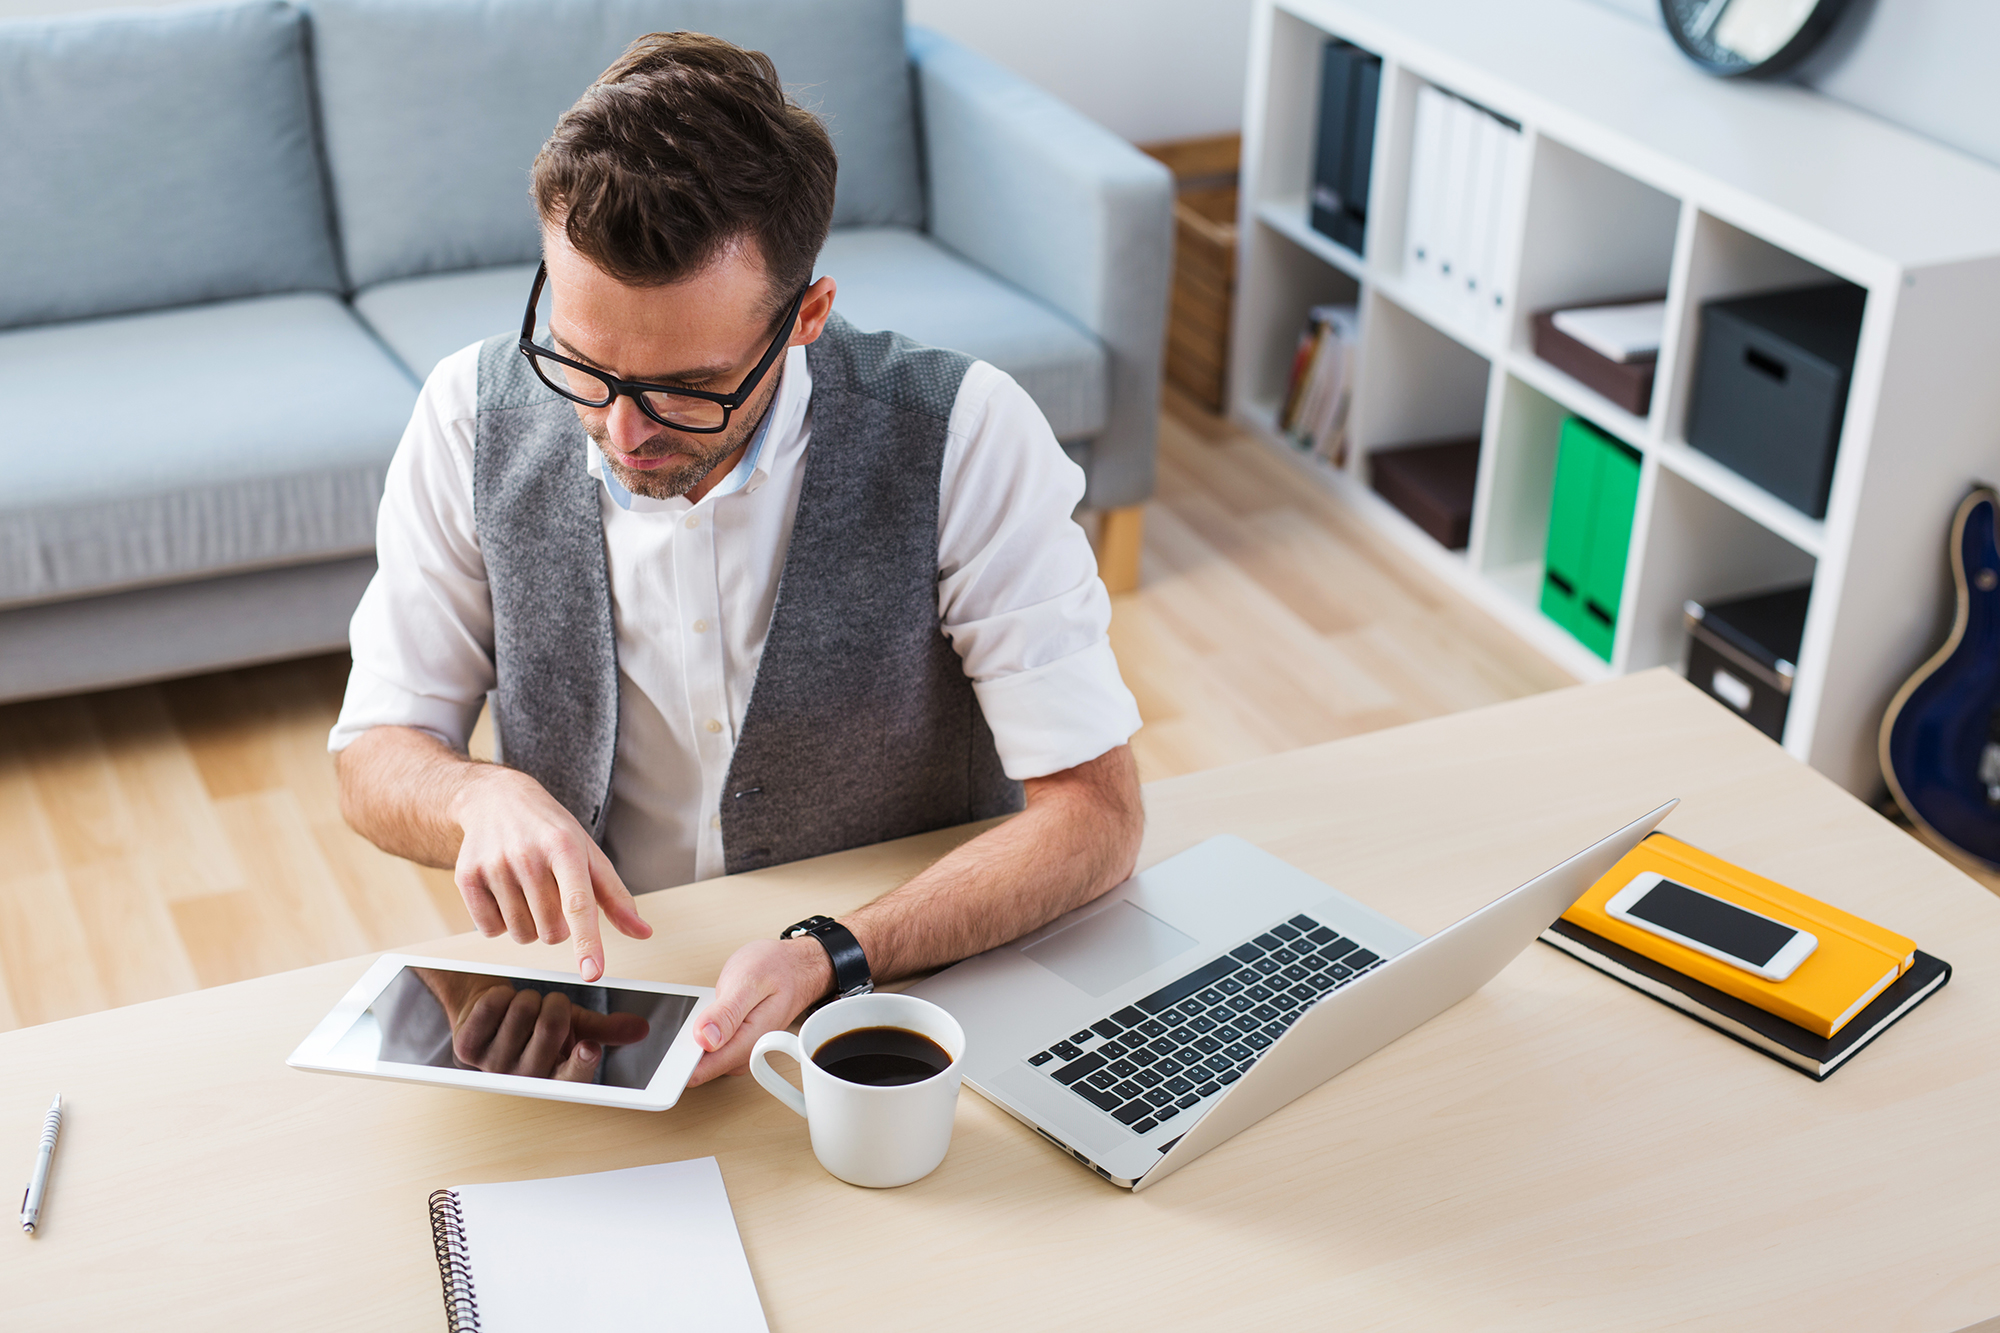 Self-employed man working from home. (Image: Shutterstock)